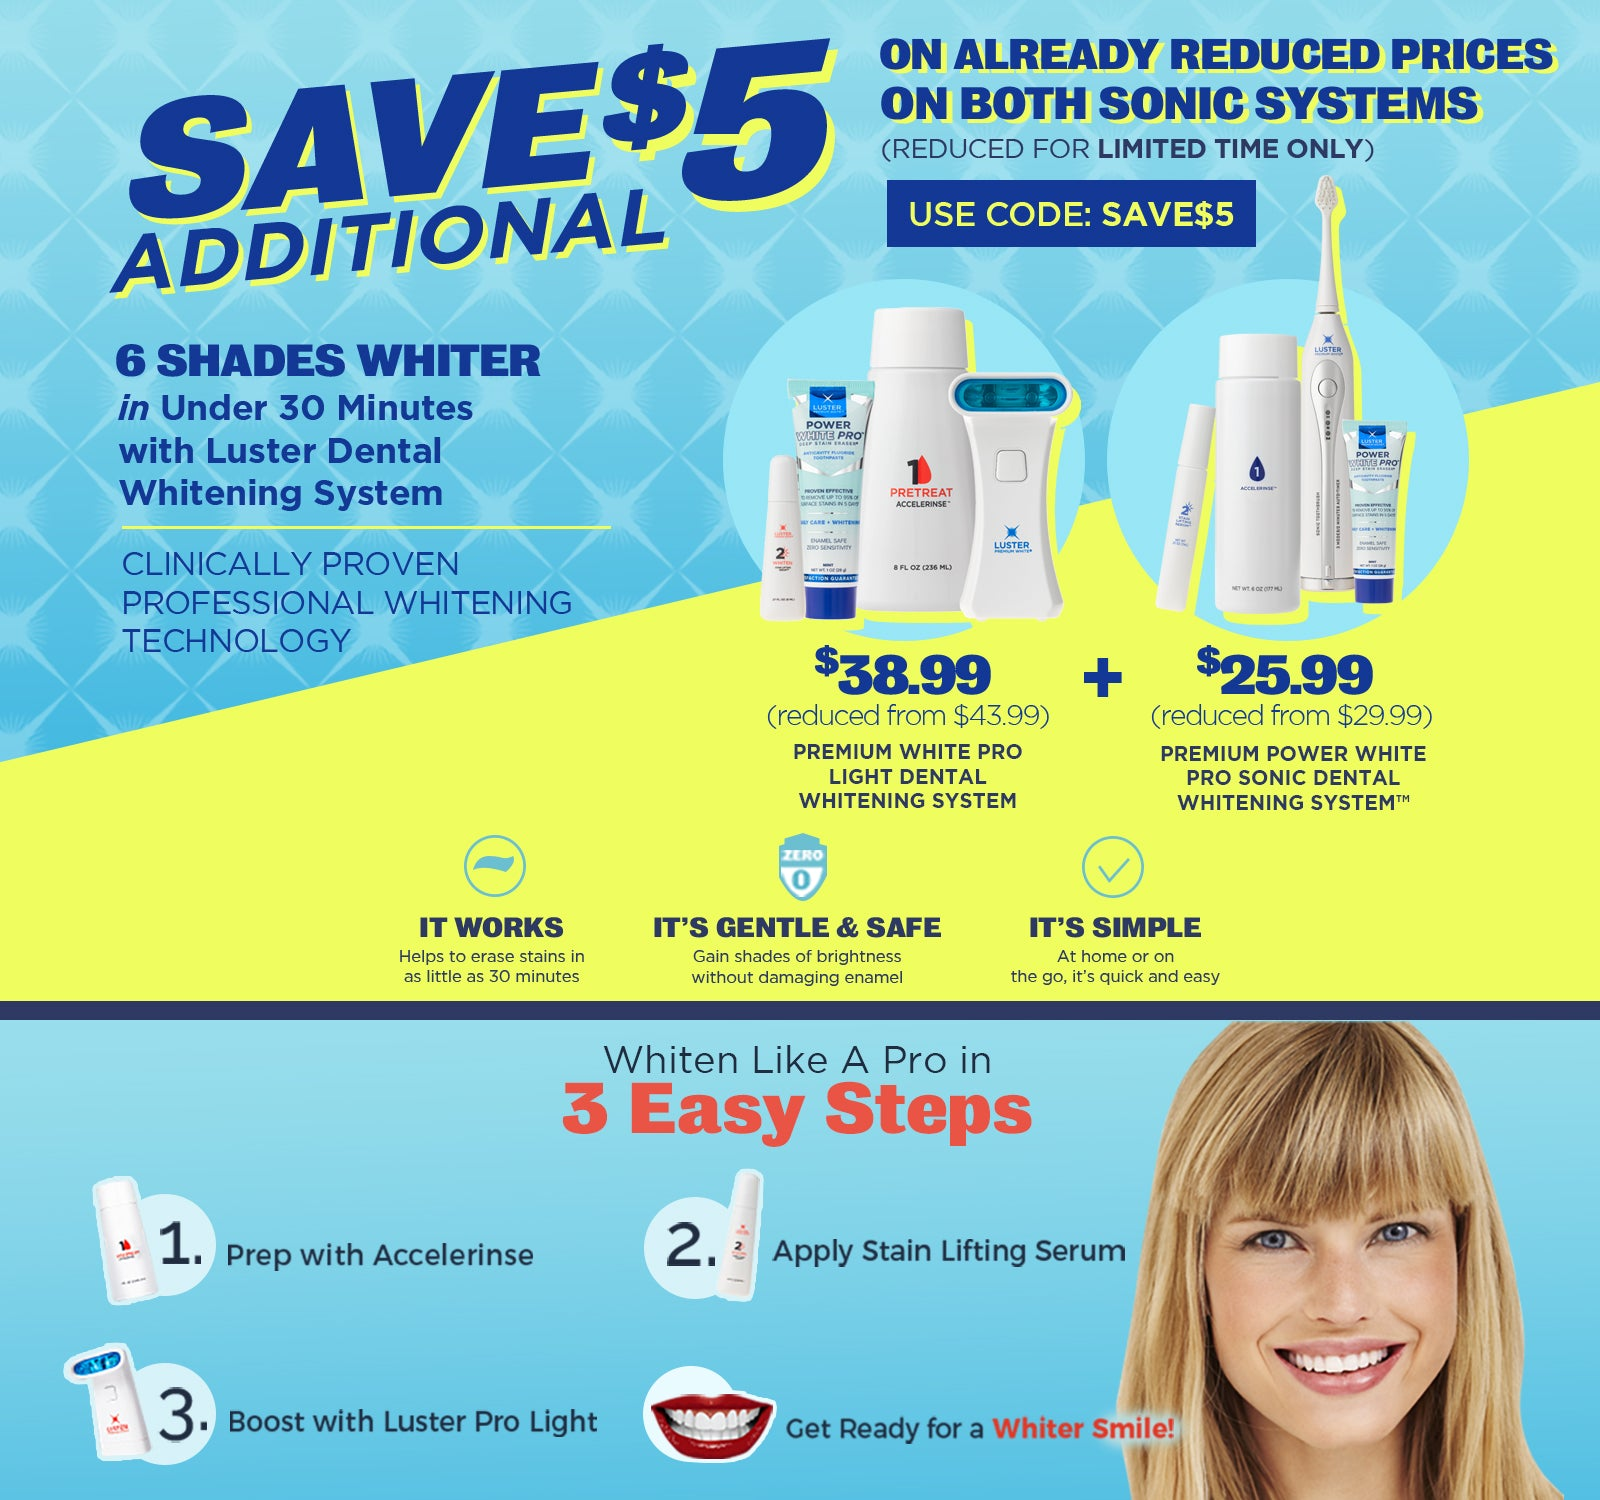 Save $5 on Luster Premium White Dental Whitening Systems